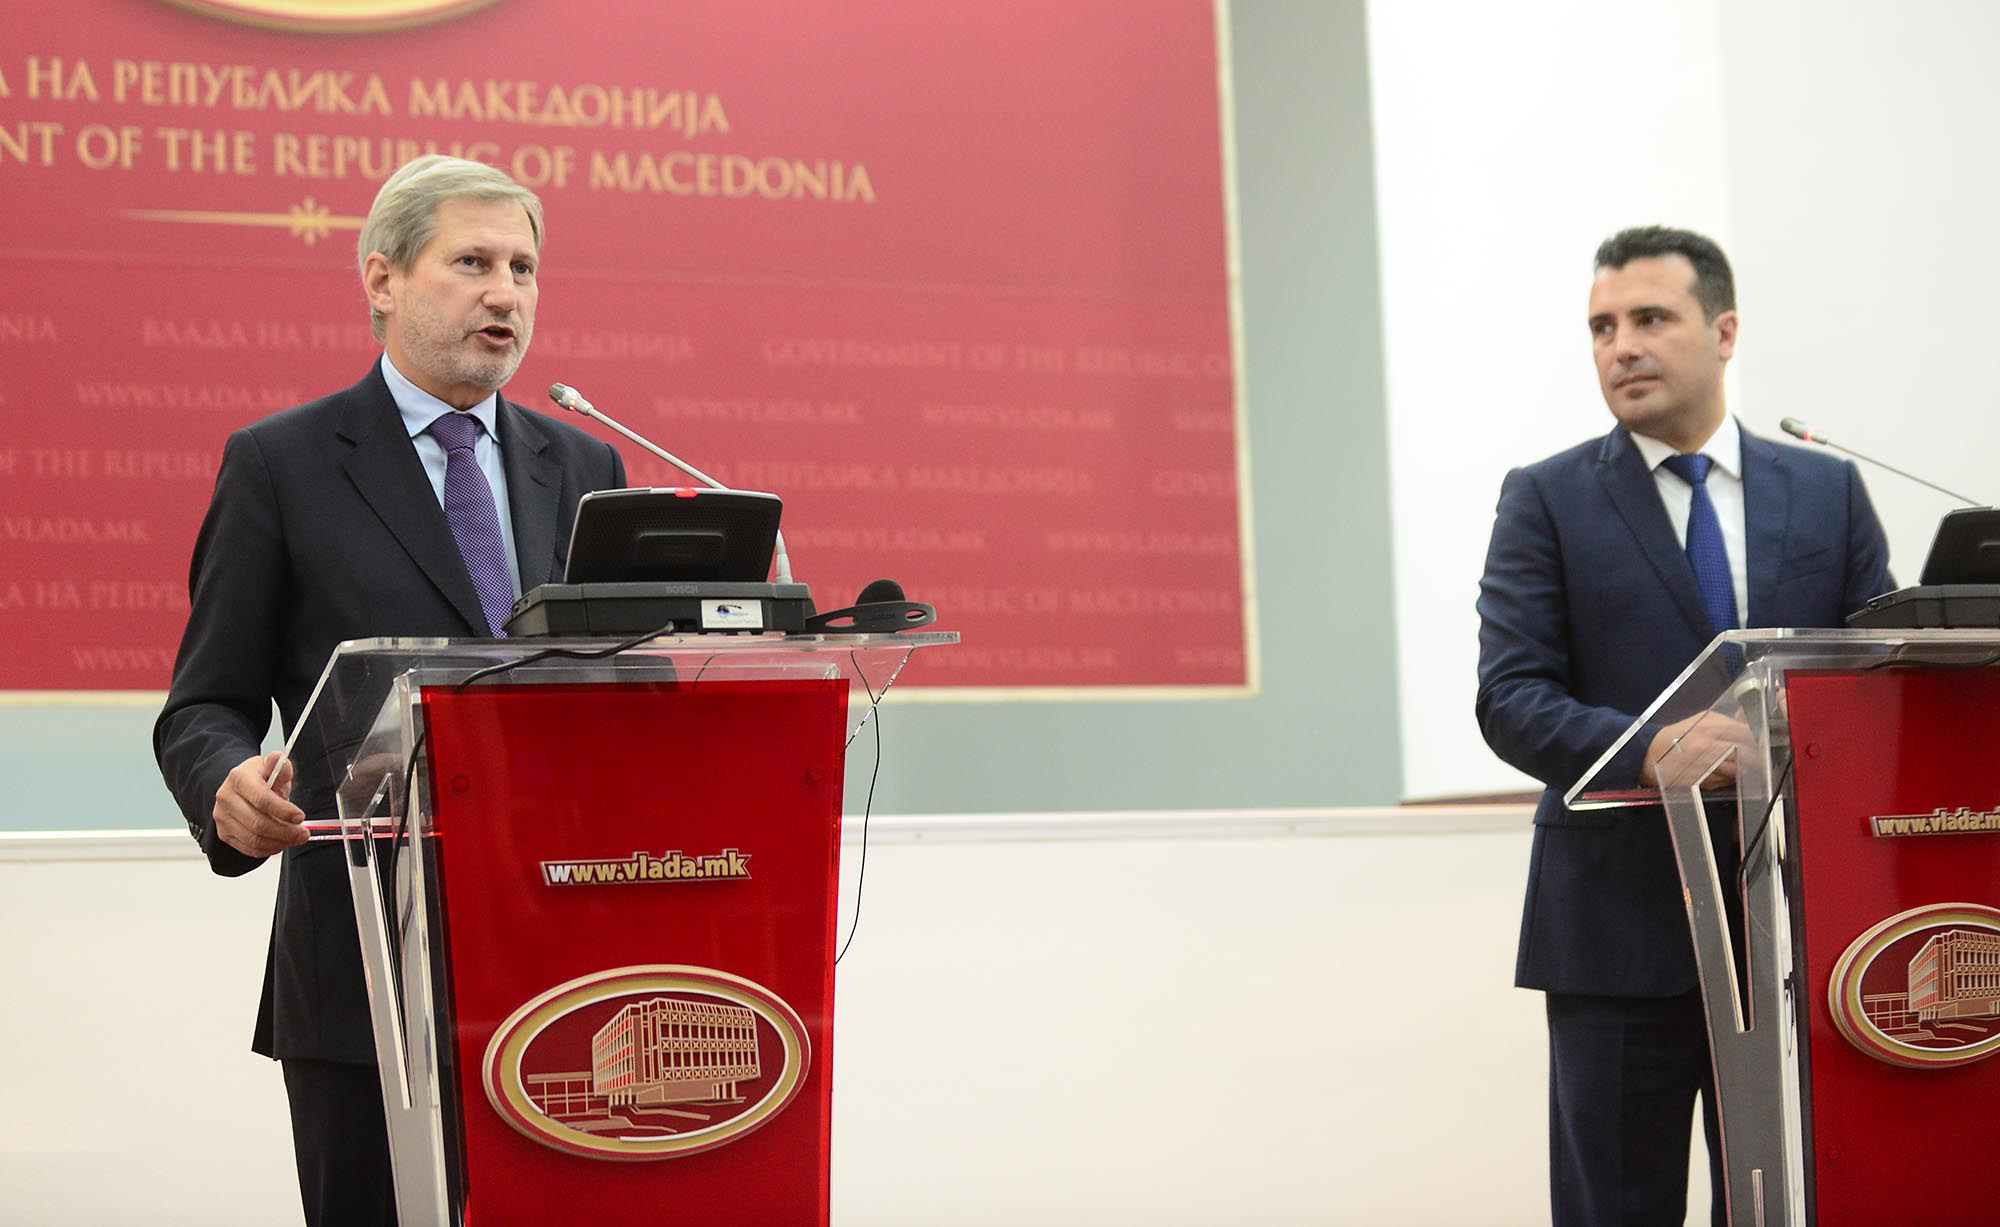 Hahn in Skopje: We're in the right path, but we need to see concrete results